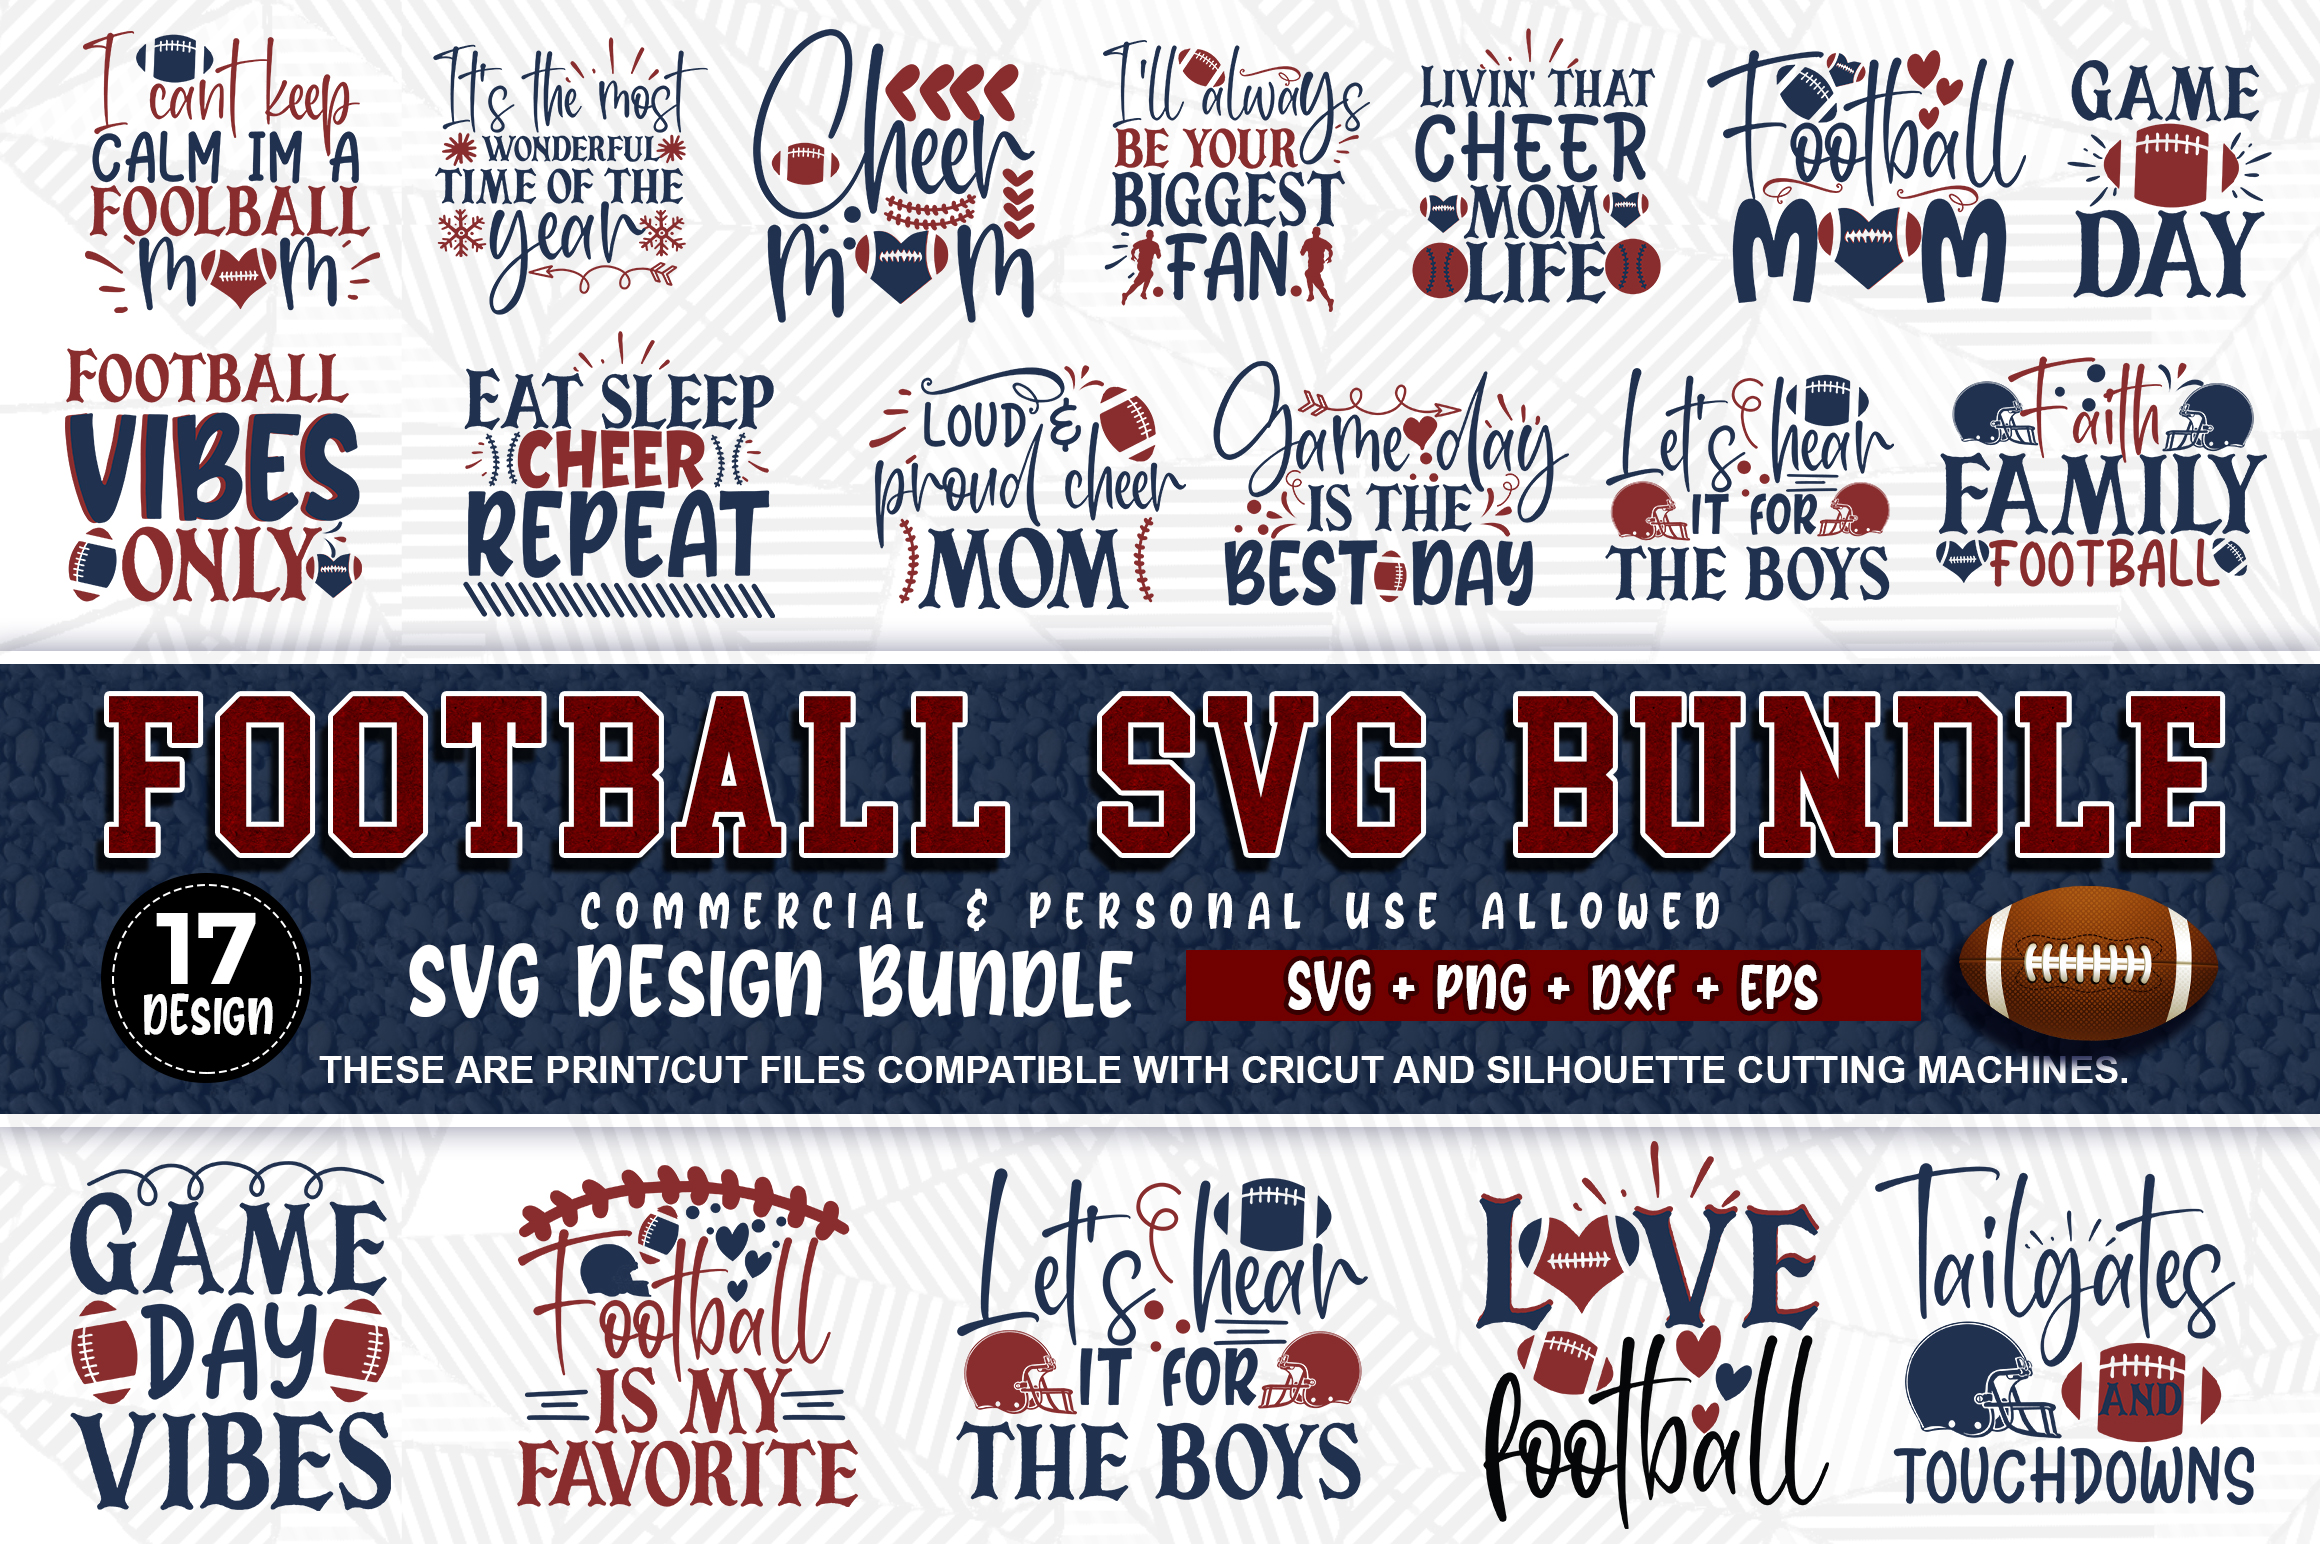 510 SVG DESIGN THE MIGHTY BUNDLE |32 DIFFERENT BUNDLES example image 15